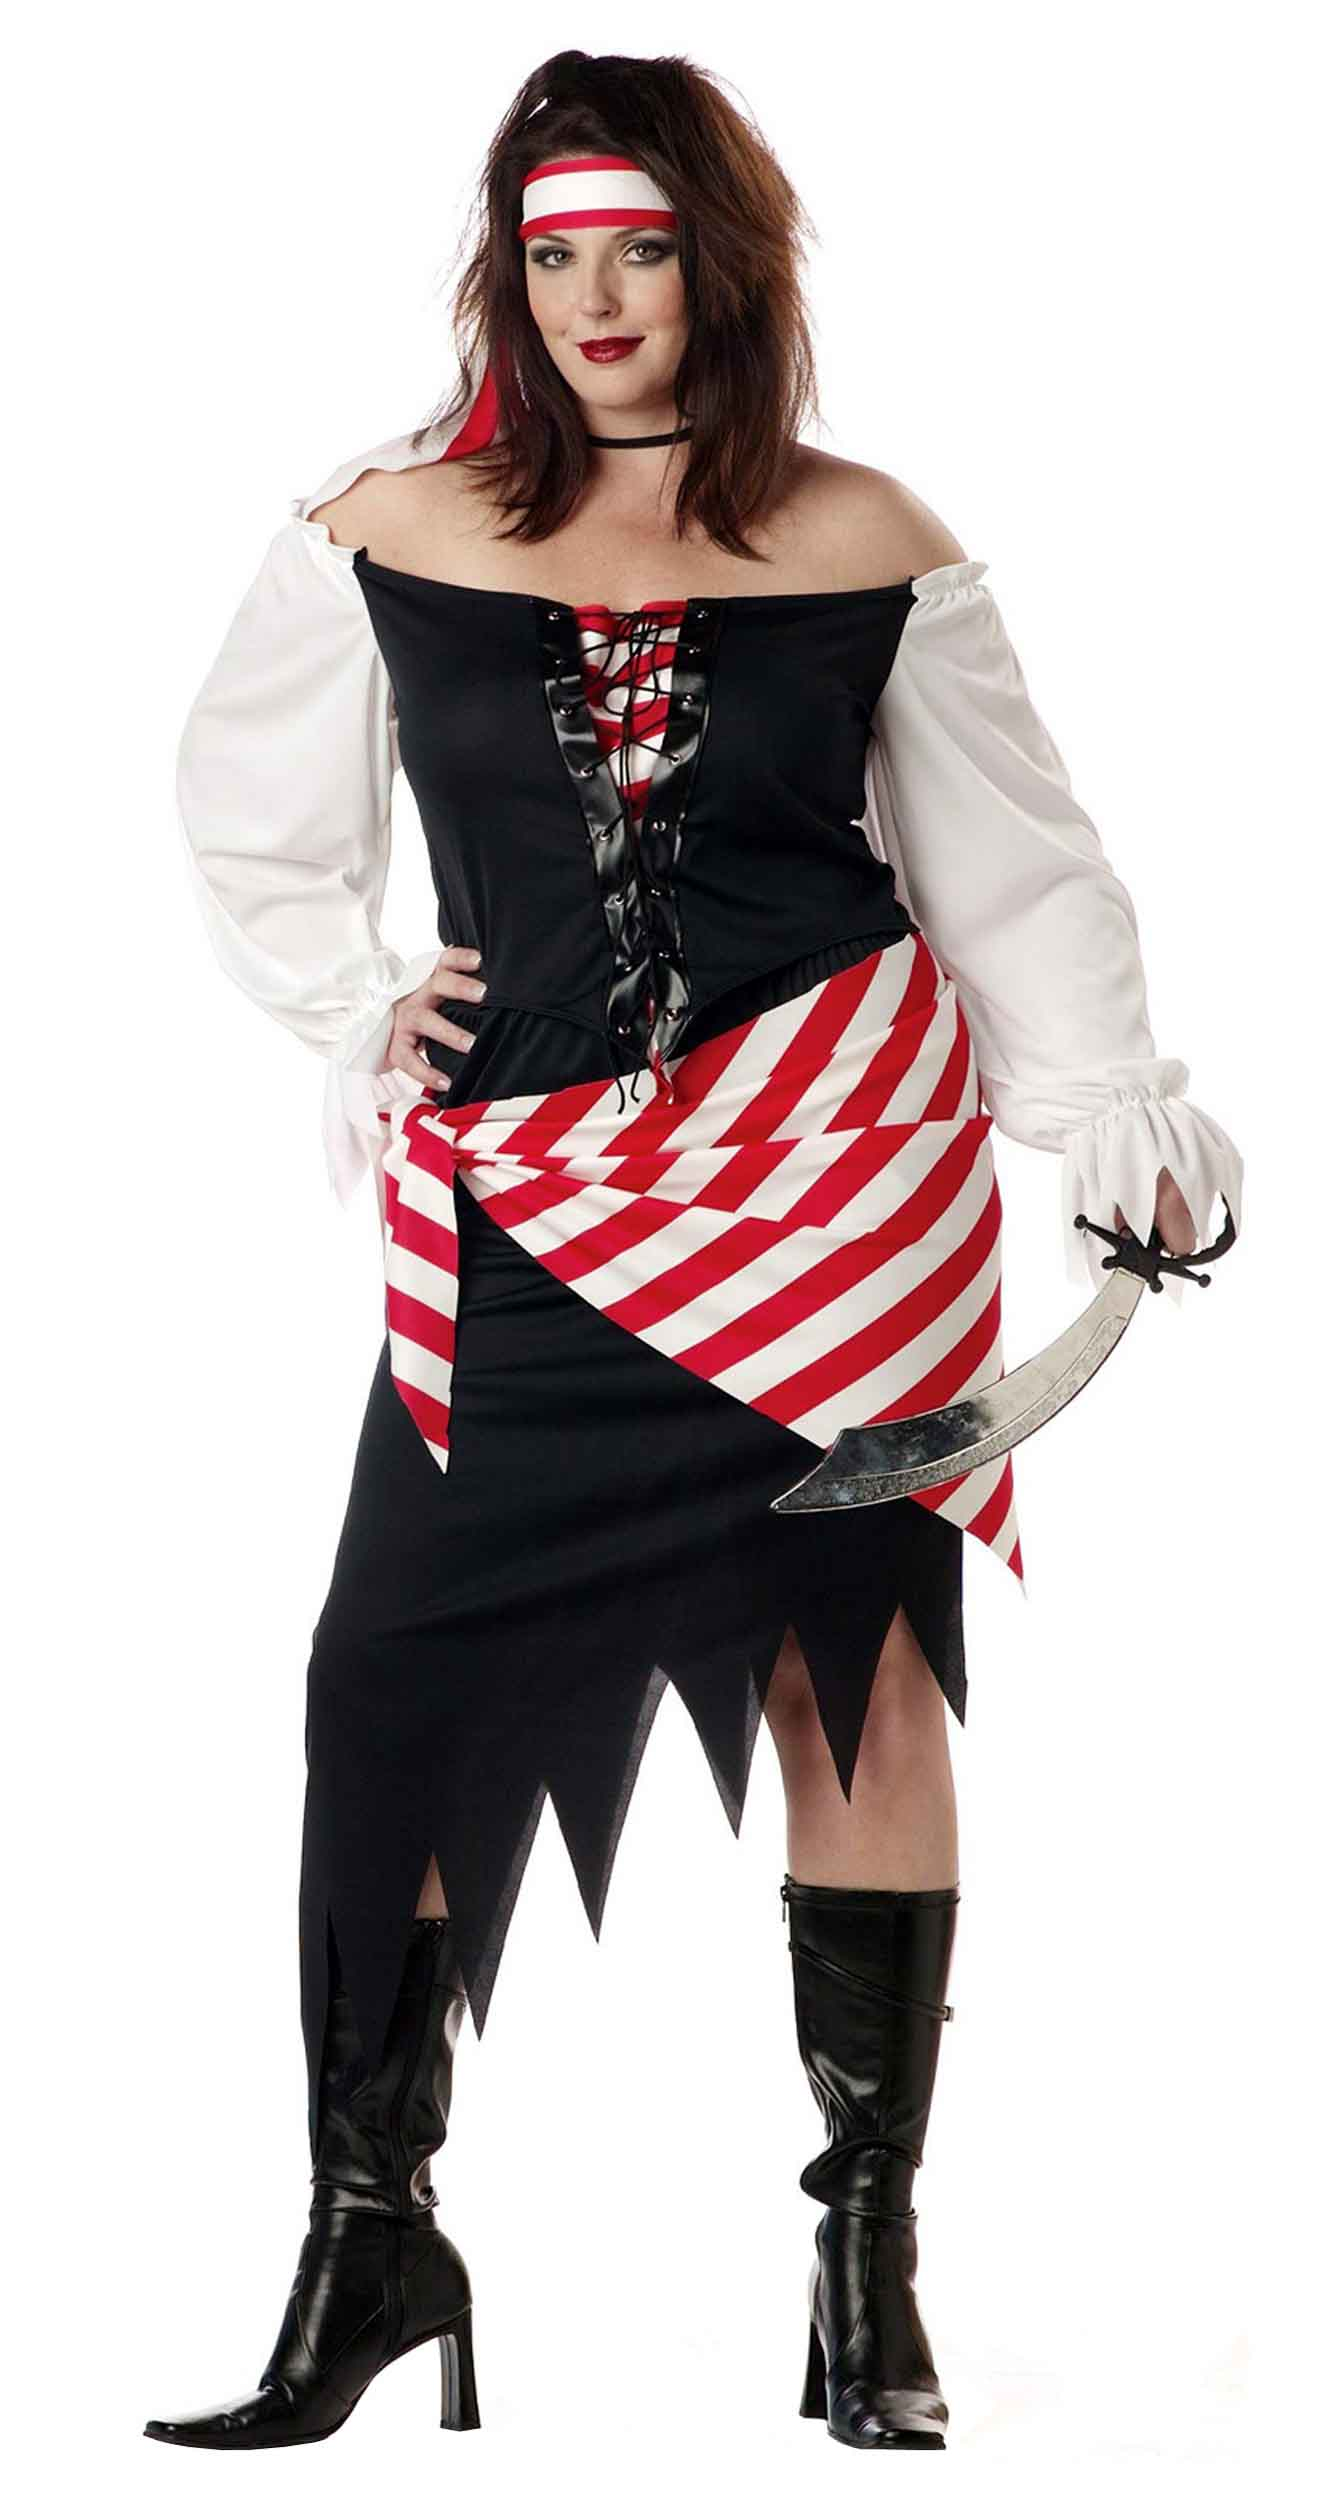 Pirate Beauty Plus Size Halloween Costume For Women